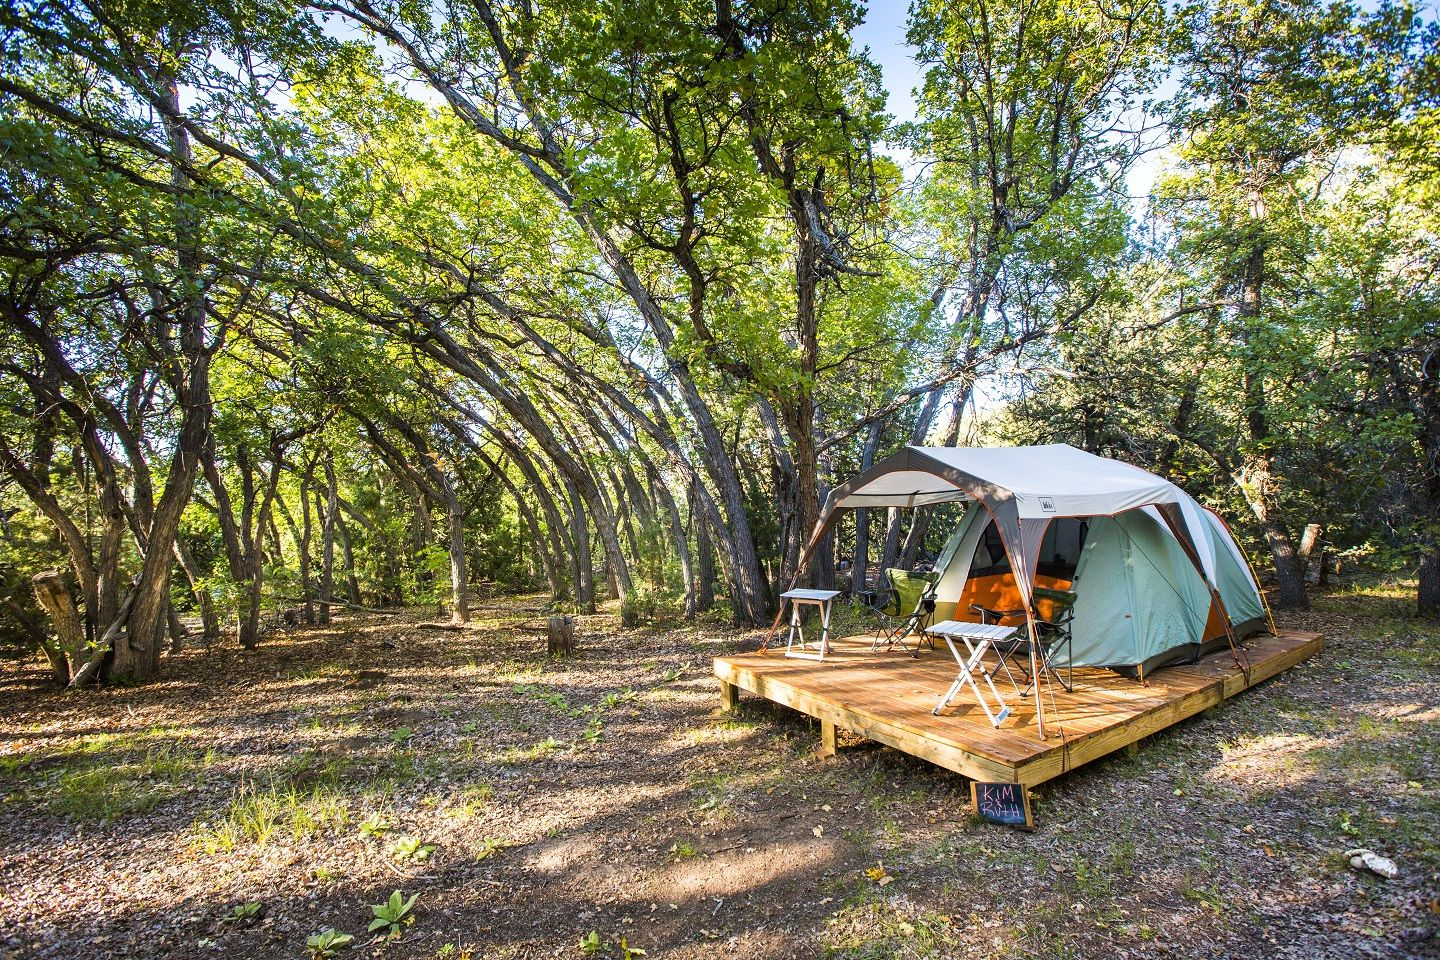 A Private Secluded Campsite Makes A Trip To Zion And